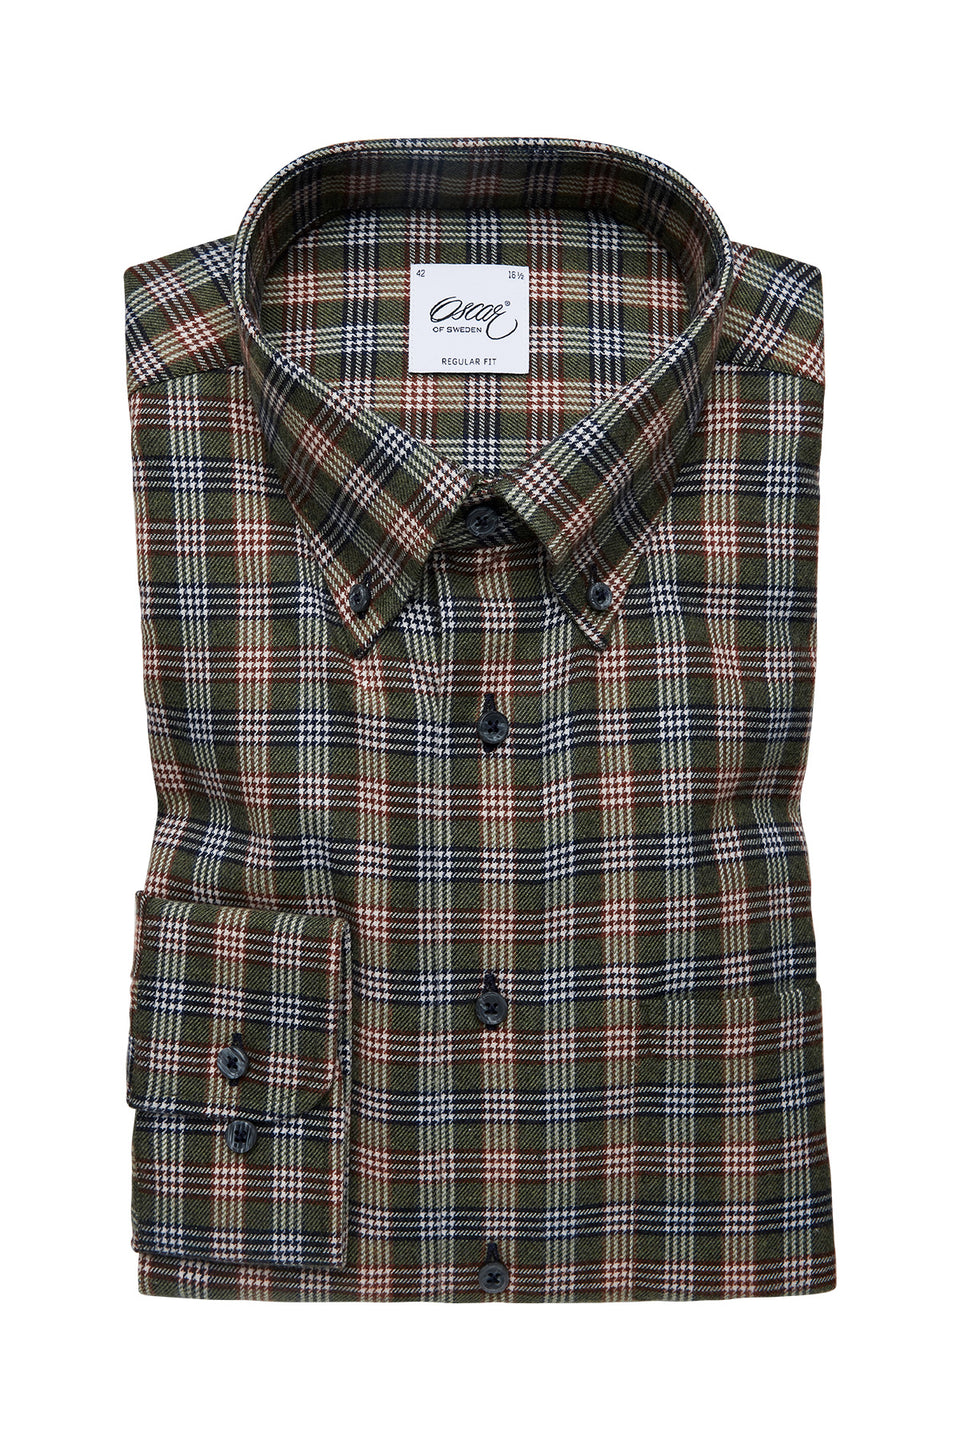 Green checked regular fit shirt